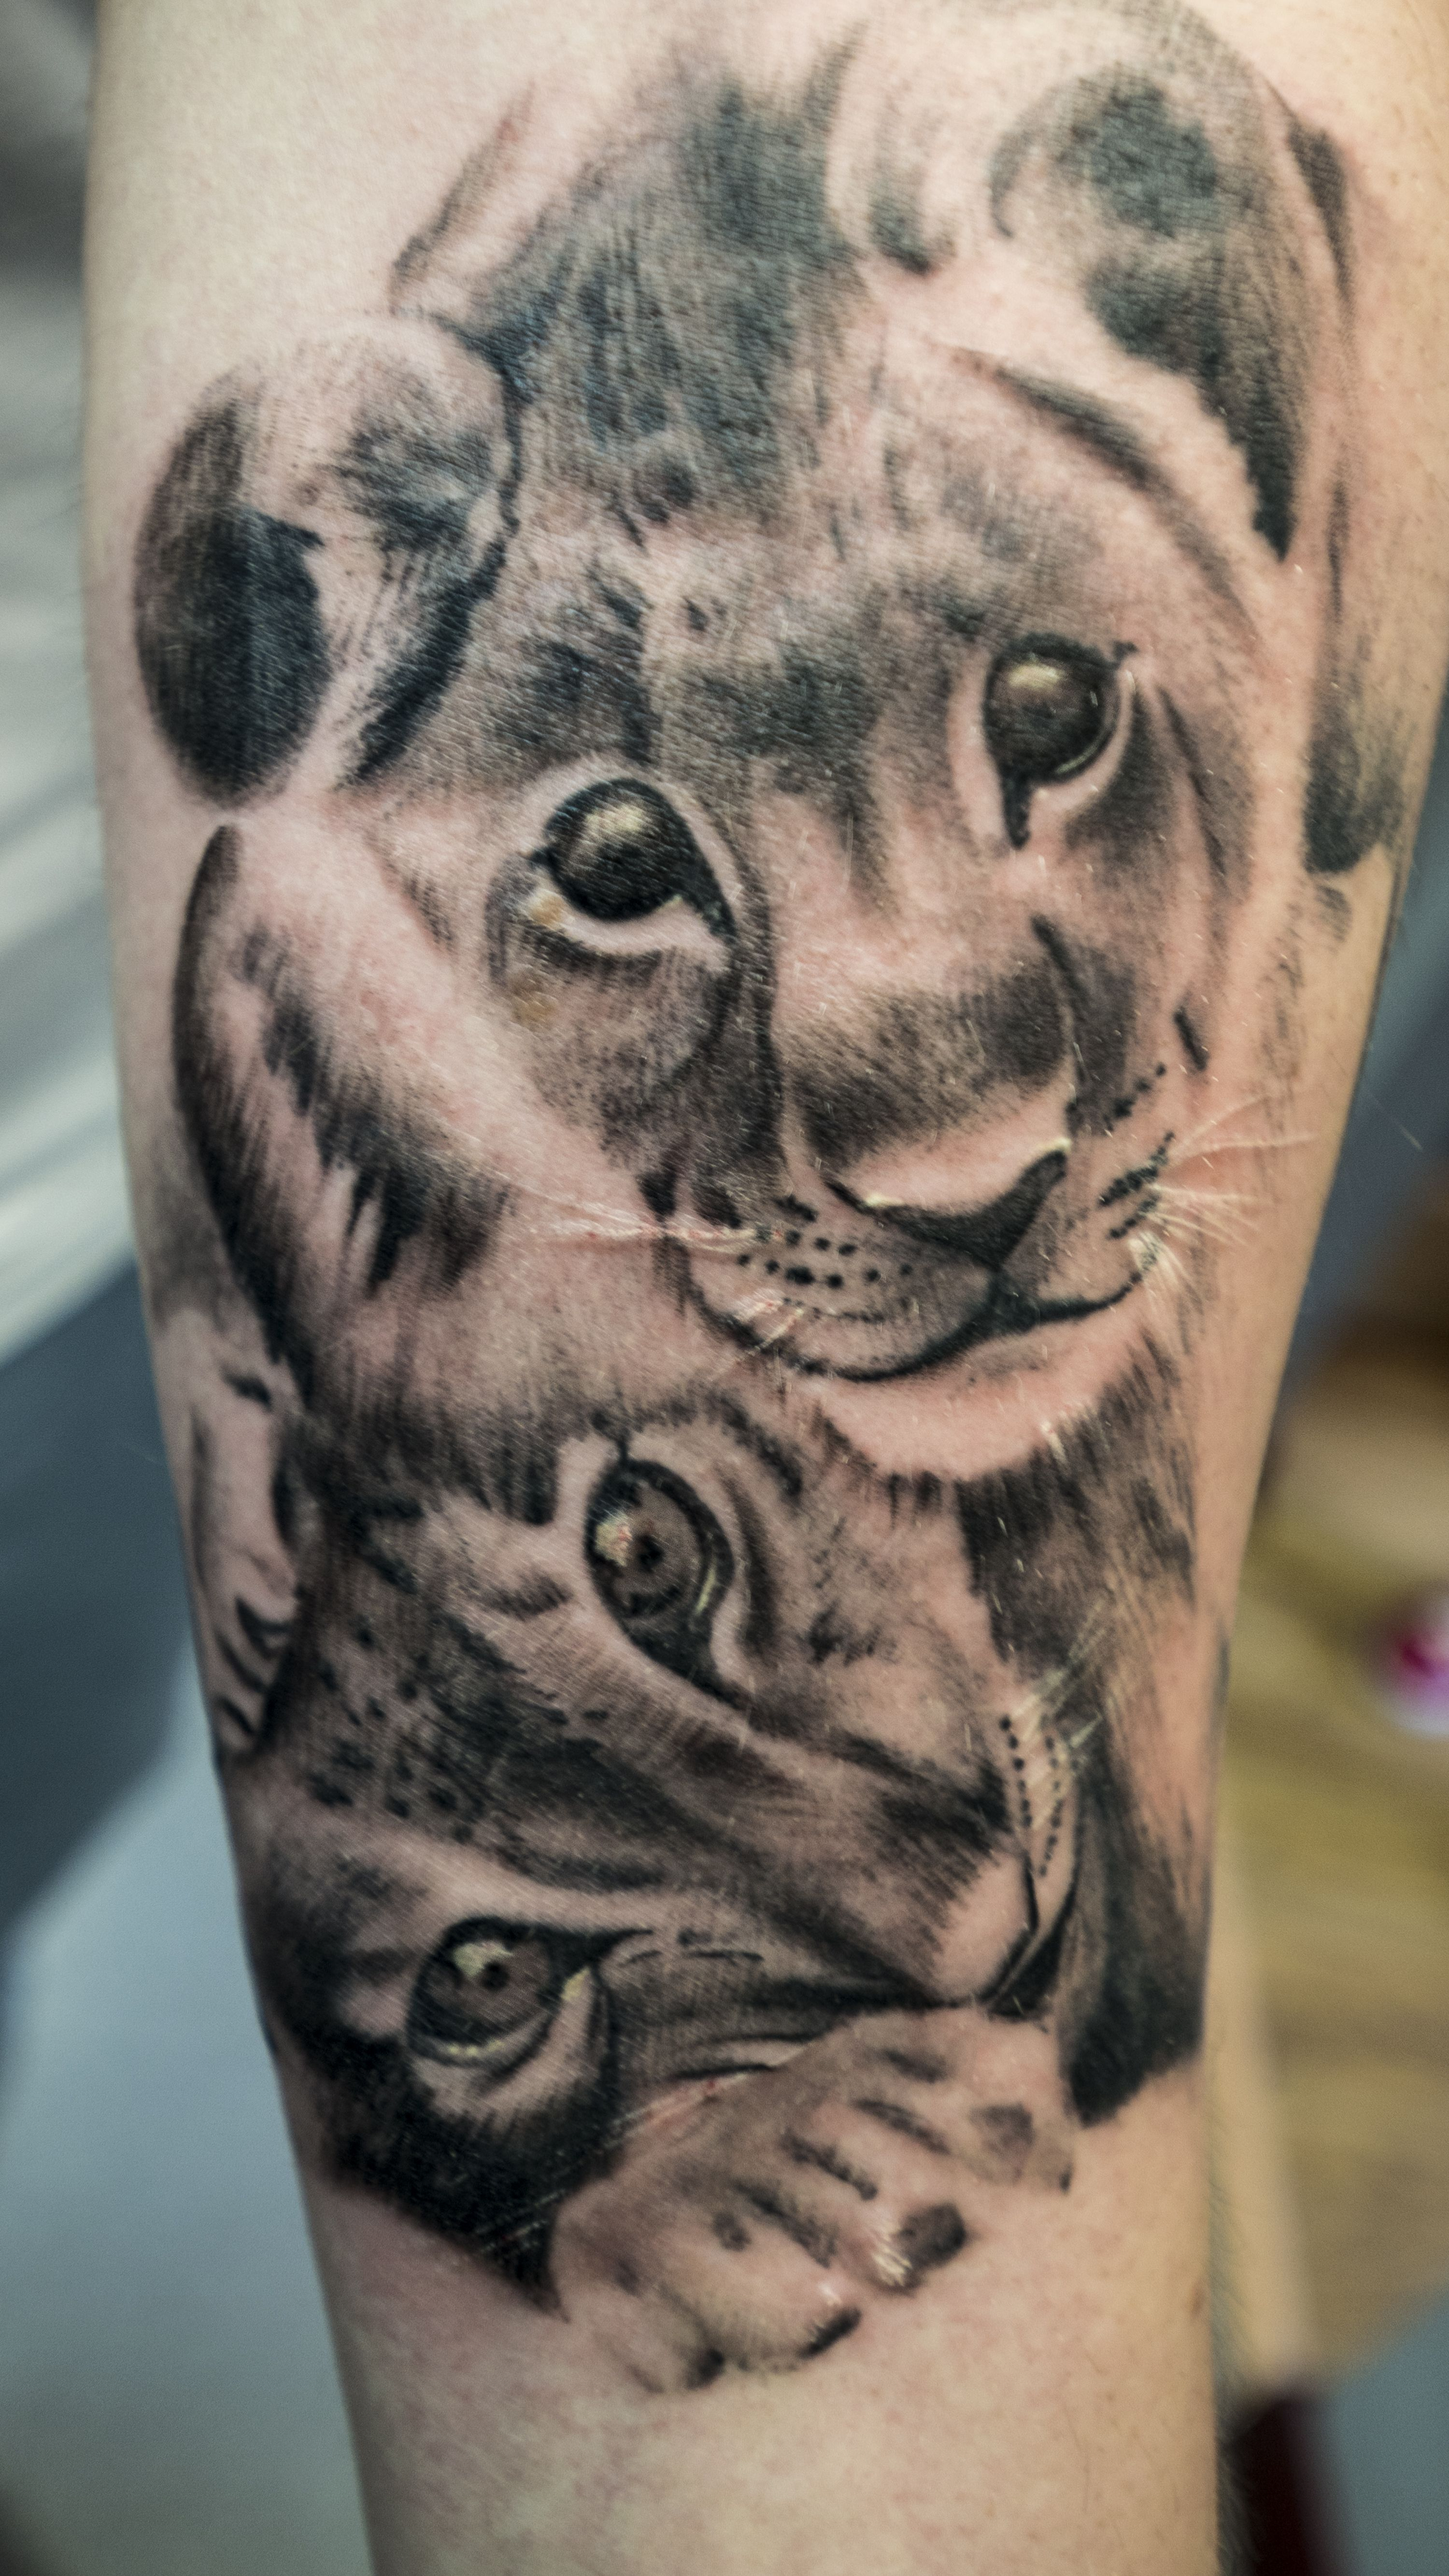 150 realistic lion tattoos and meanings 2017 collection - Lion Cub Tattoo Blackandgrey Realism Lioncub Childrentattoo Tributetattoo